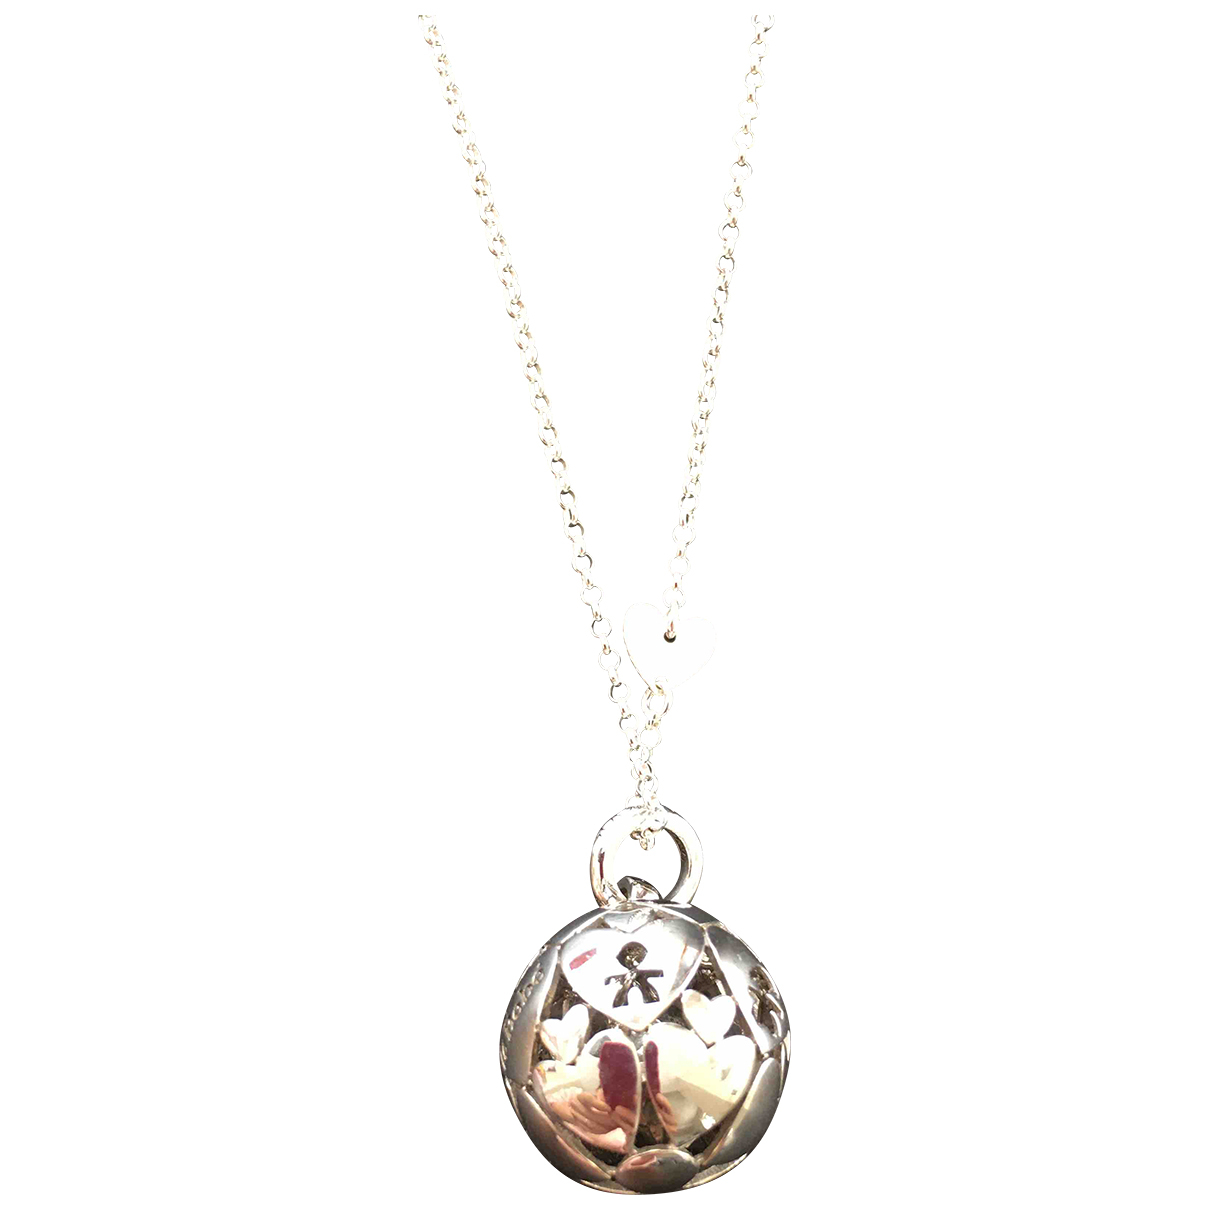 Le Bebe N Silver Silver necklace for Women N